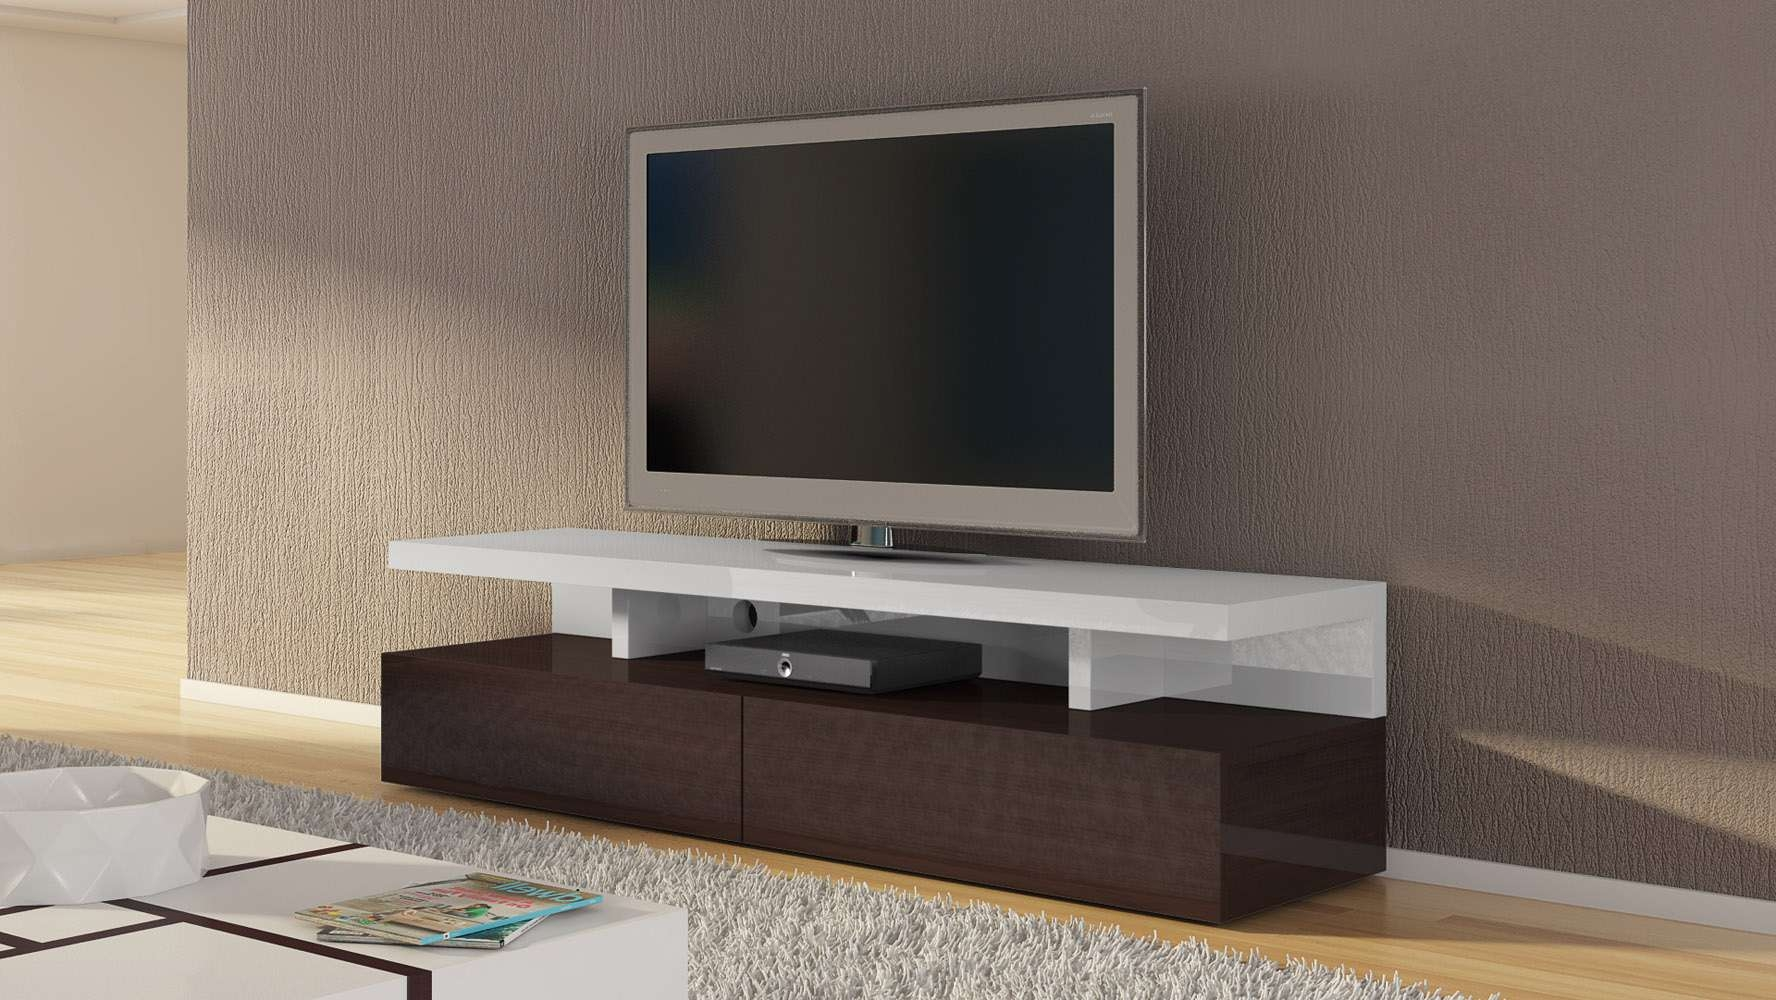 Tv Stand : High Tv Stand Tv027 Modern In Red Gloss Free Shipping Intended For Red Gloss Tv Stands (View 15 of 15)